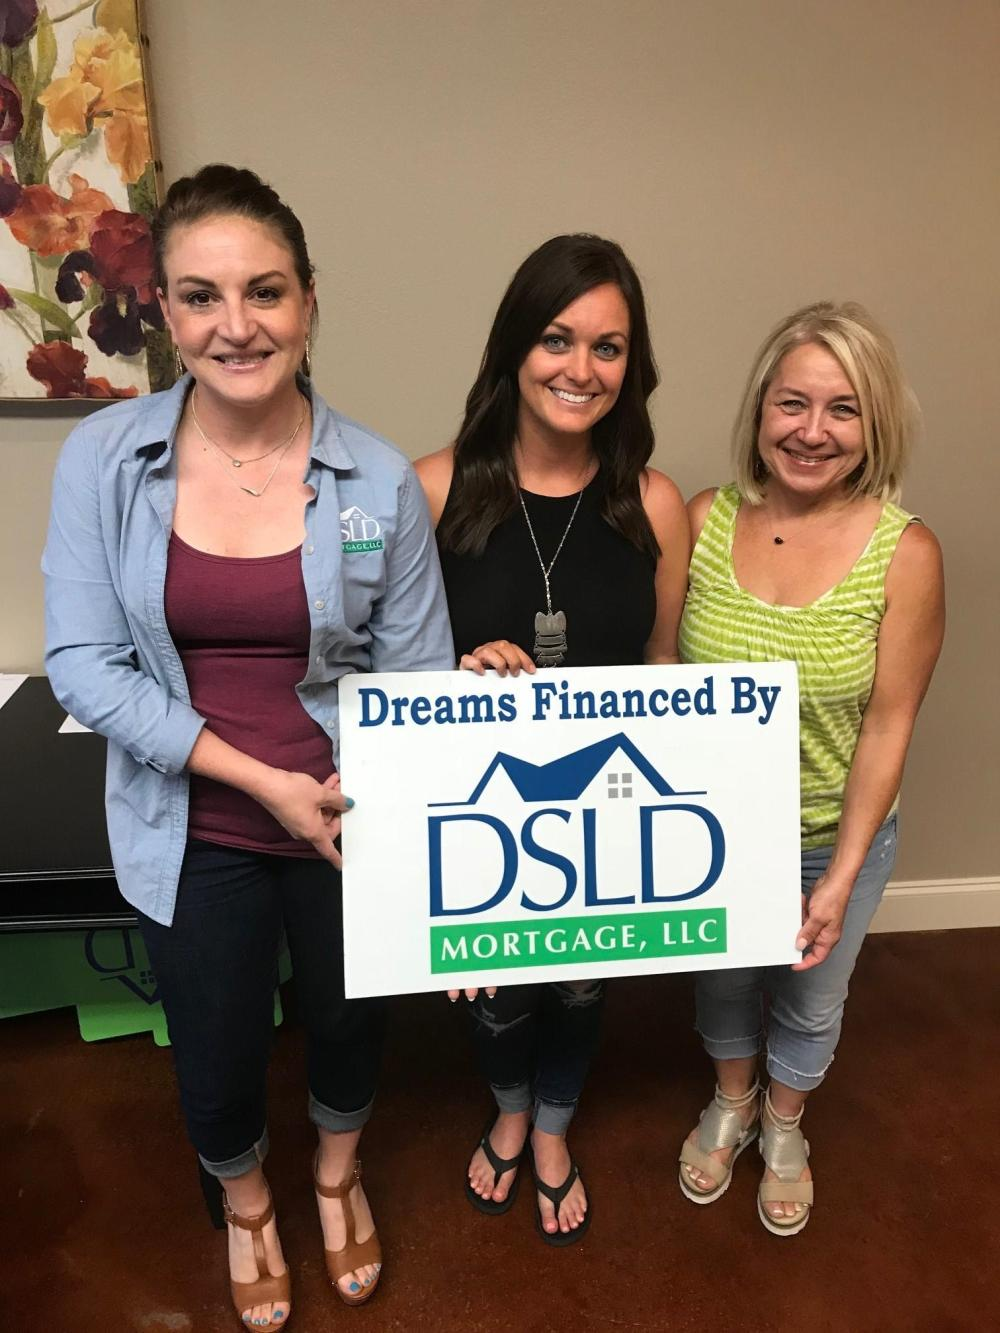 Megan In Pruden Creek Dsld Mortgage Your Dream Our Goal